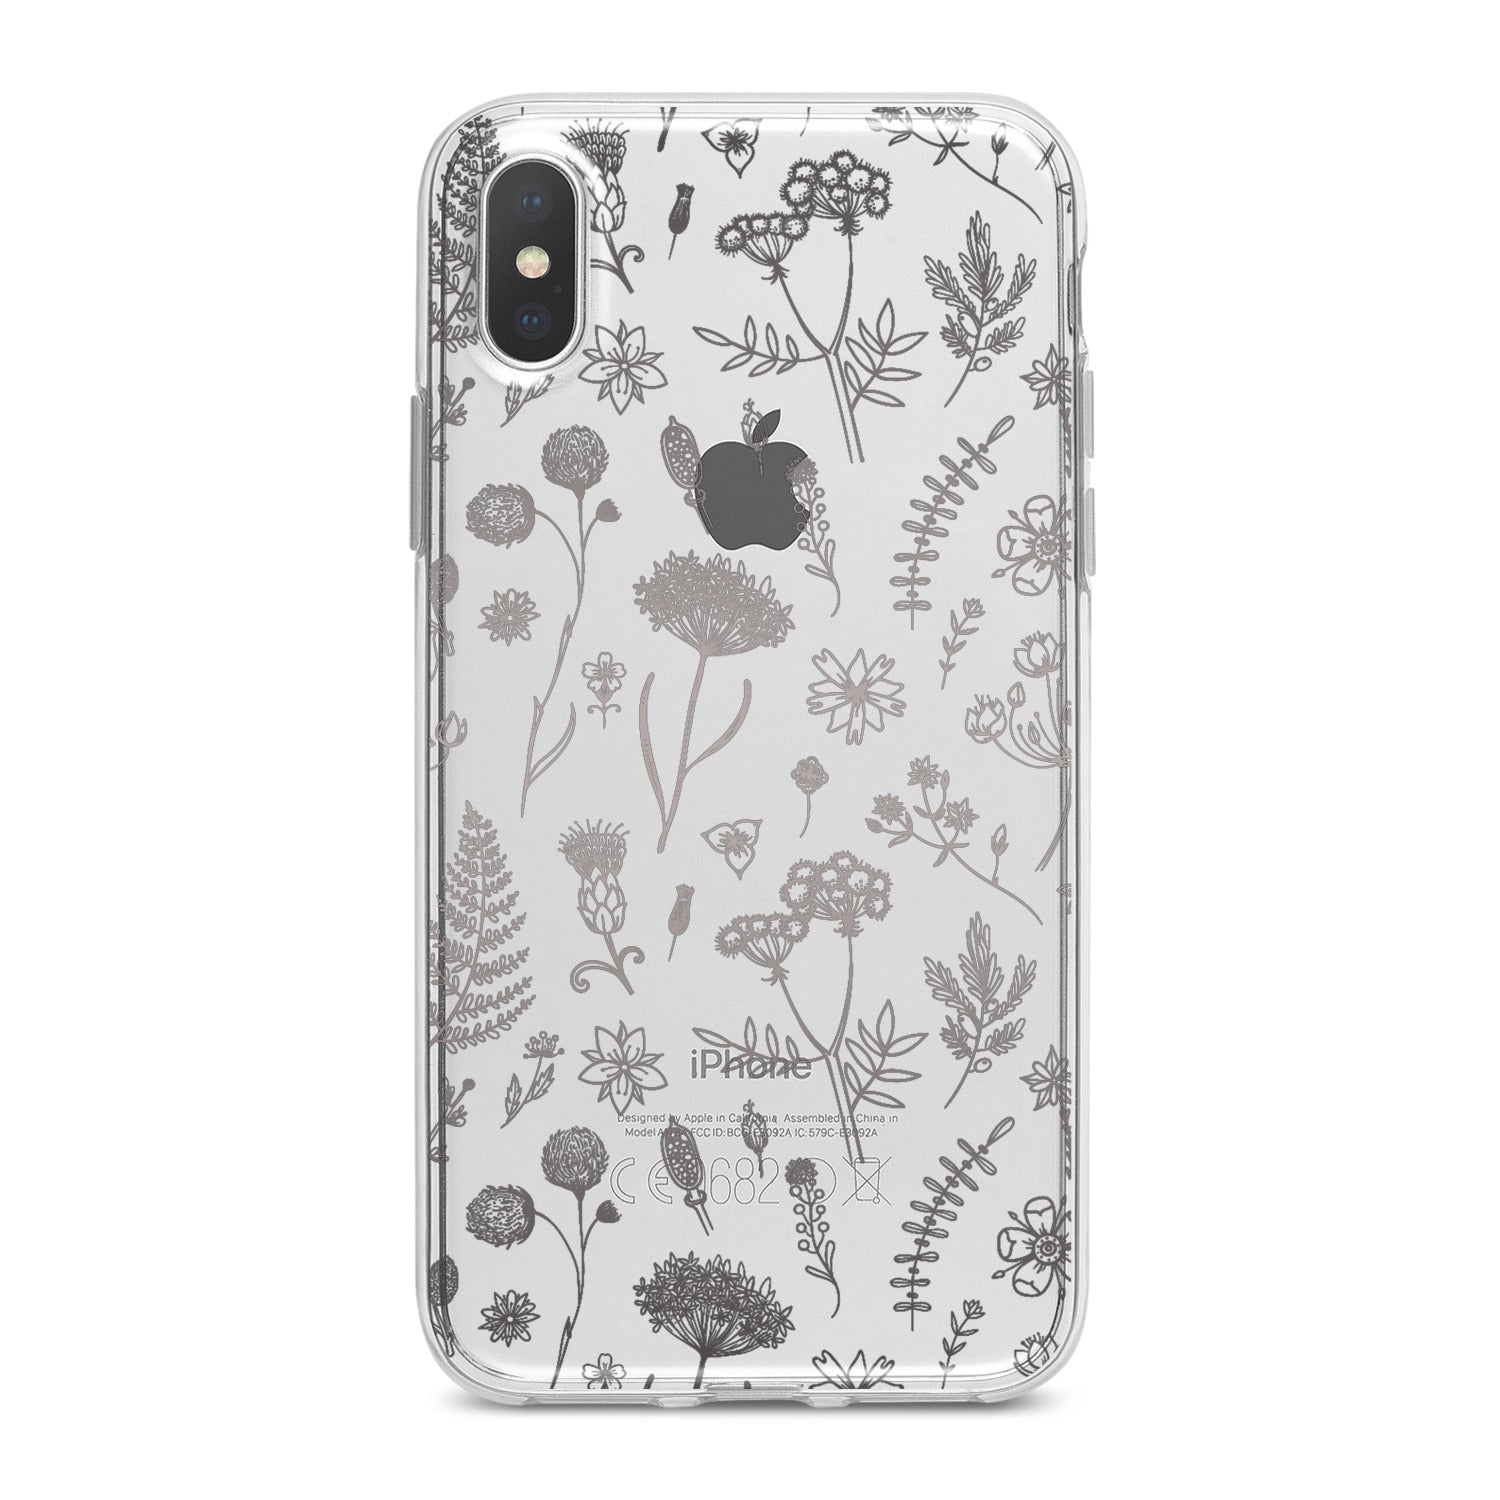 Lex Altern Cute Wildflowers Phone Case for your iPhone & Android phone.